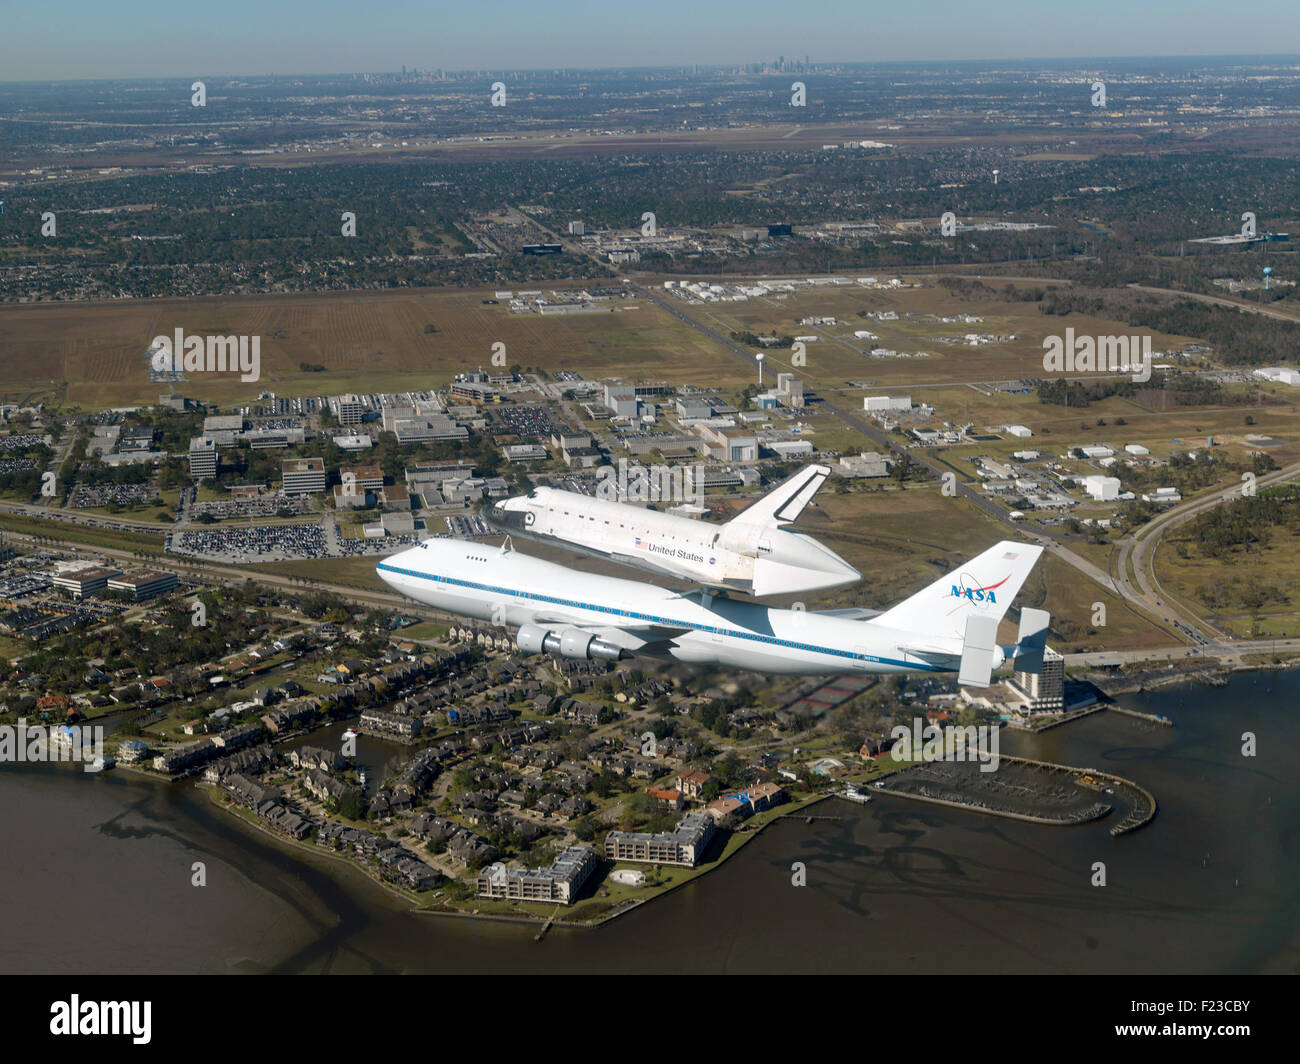 Space Shuttle Endeavour on a modified Boeing 747 shuttle carrier aircraft. Optimised version of a NASA image. Credit - Stock Image